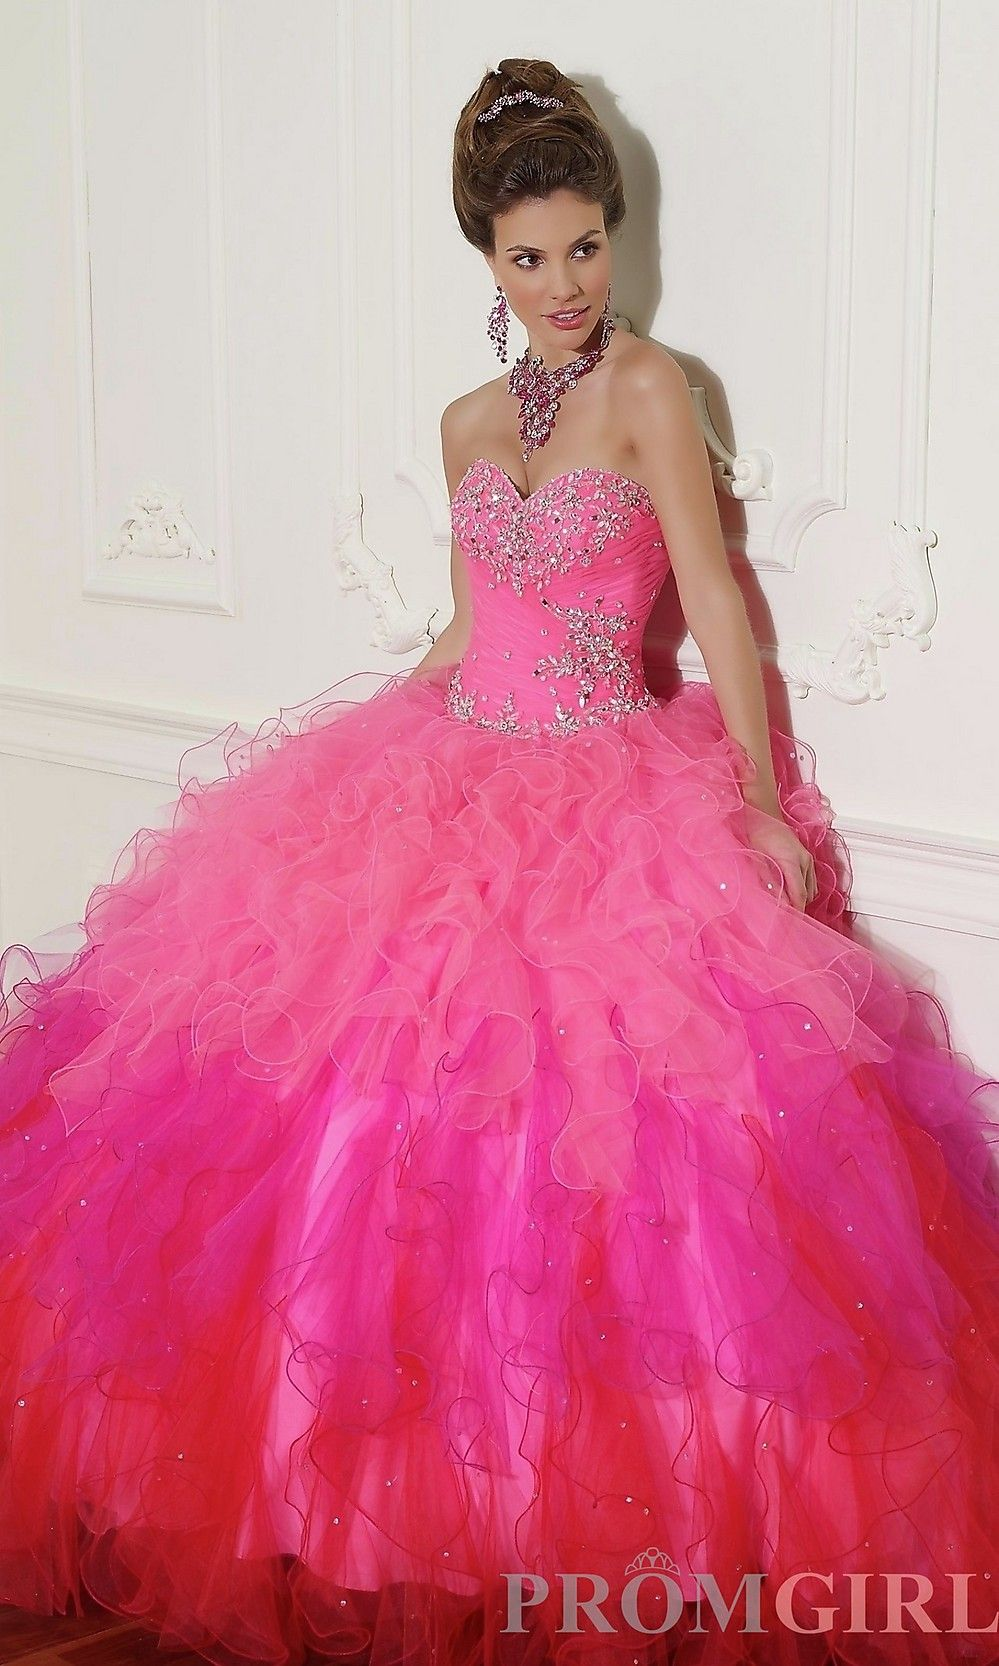 quinceanera dress 2014 | Quinceanera Dresses 2014 Tumblr | dresses ...